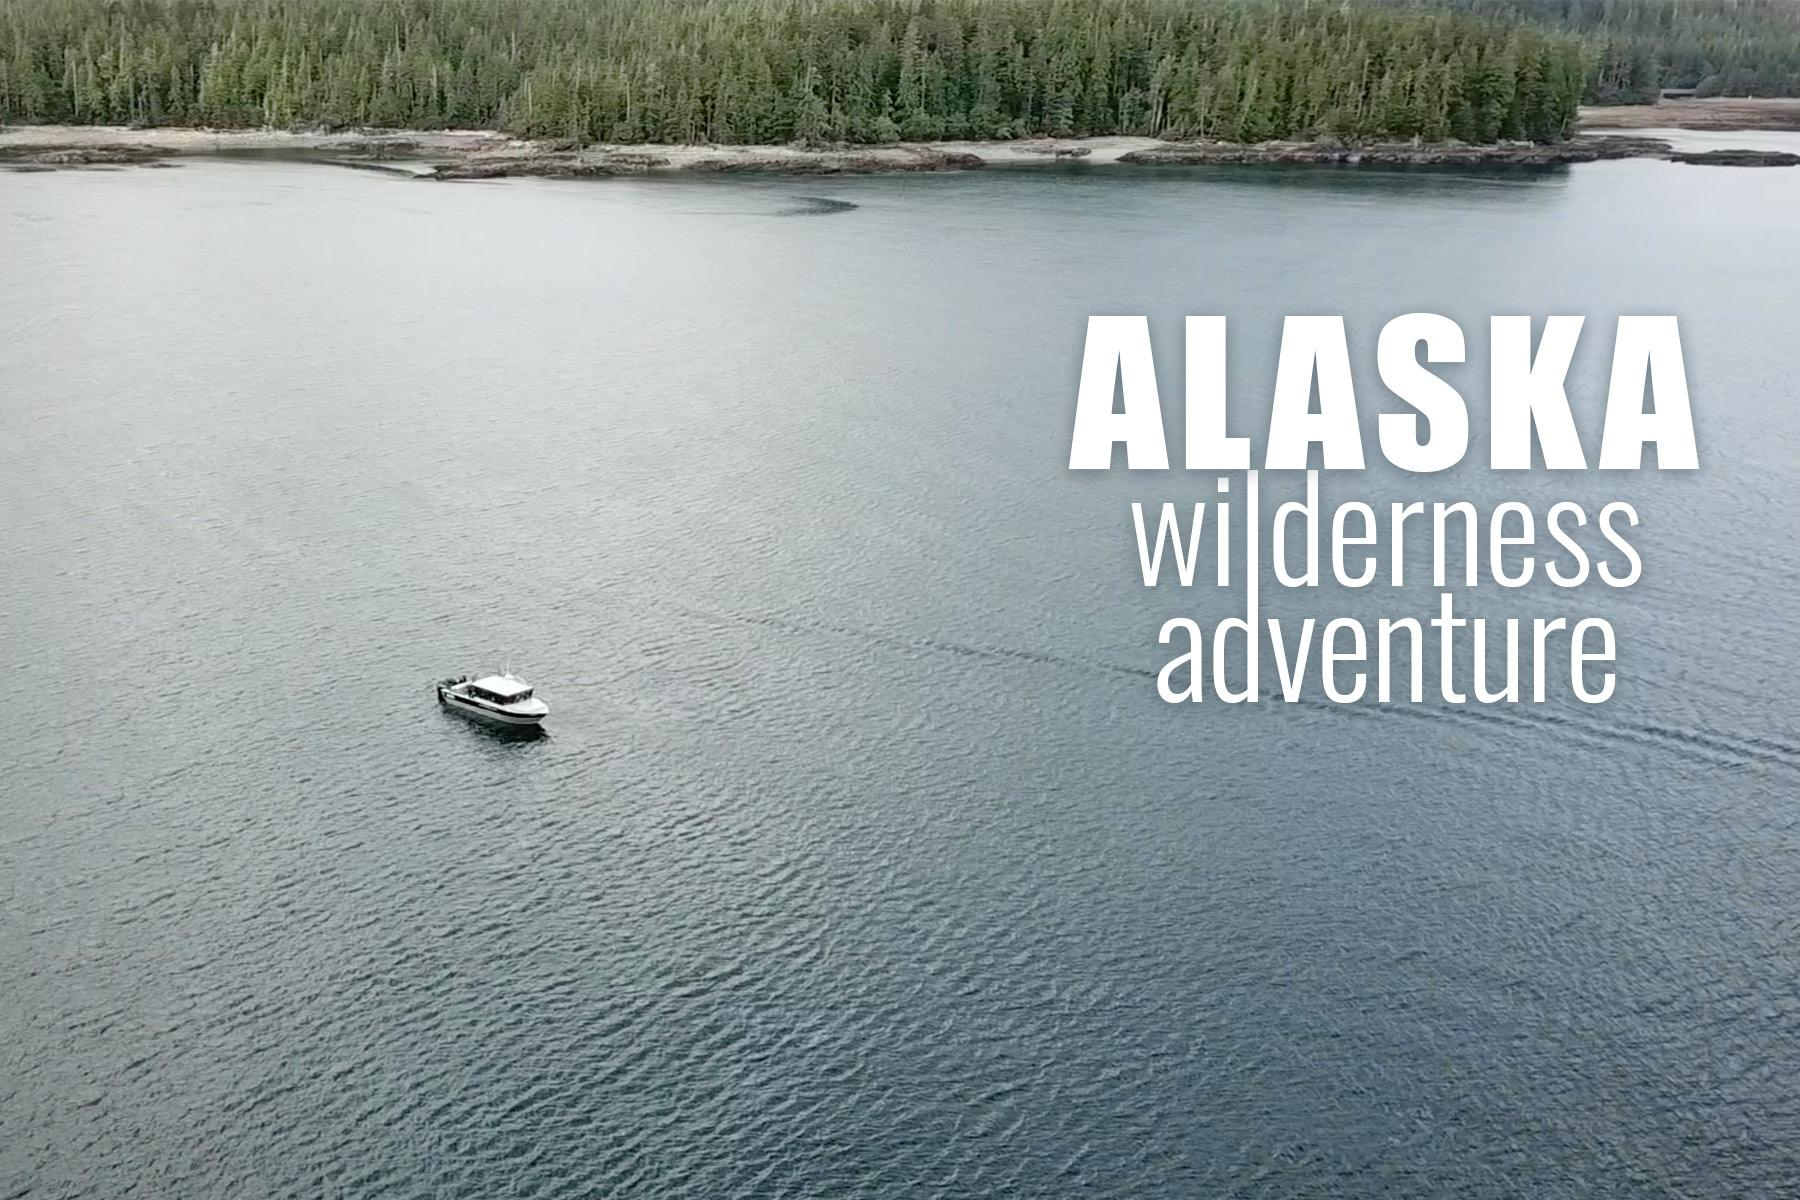 Alaska wilderness adventure video